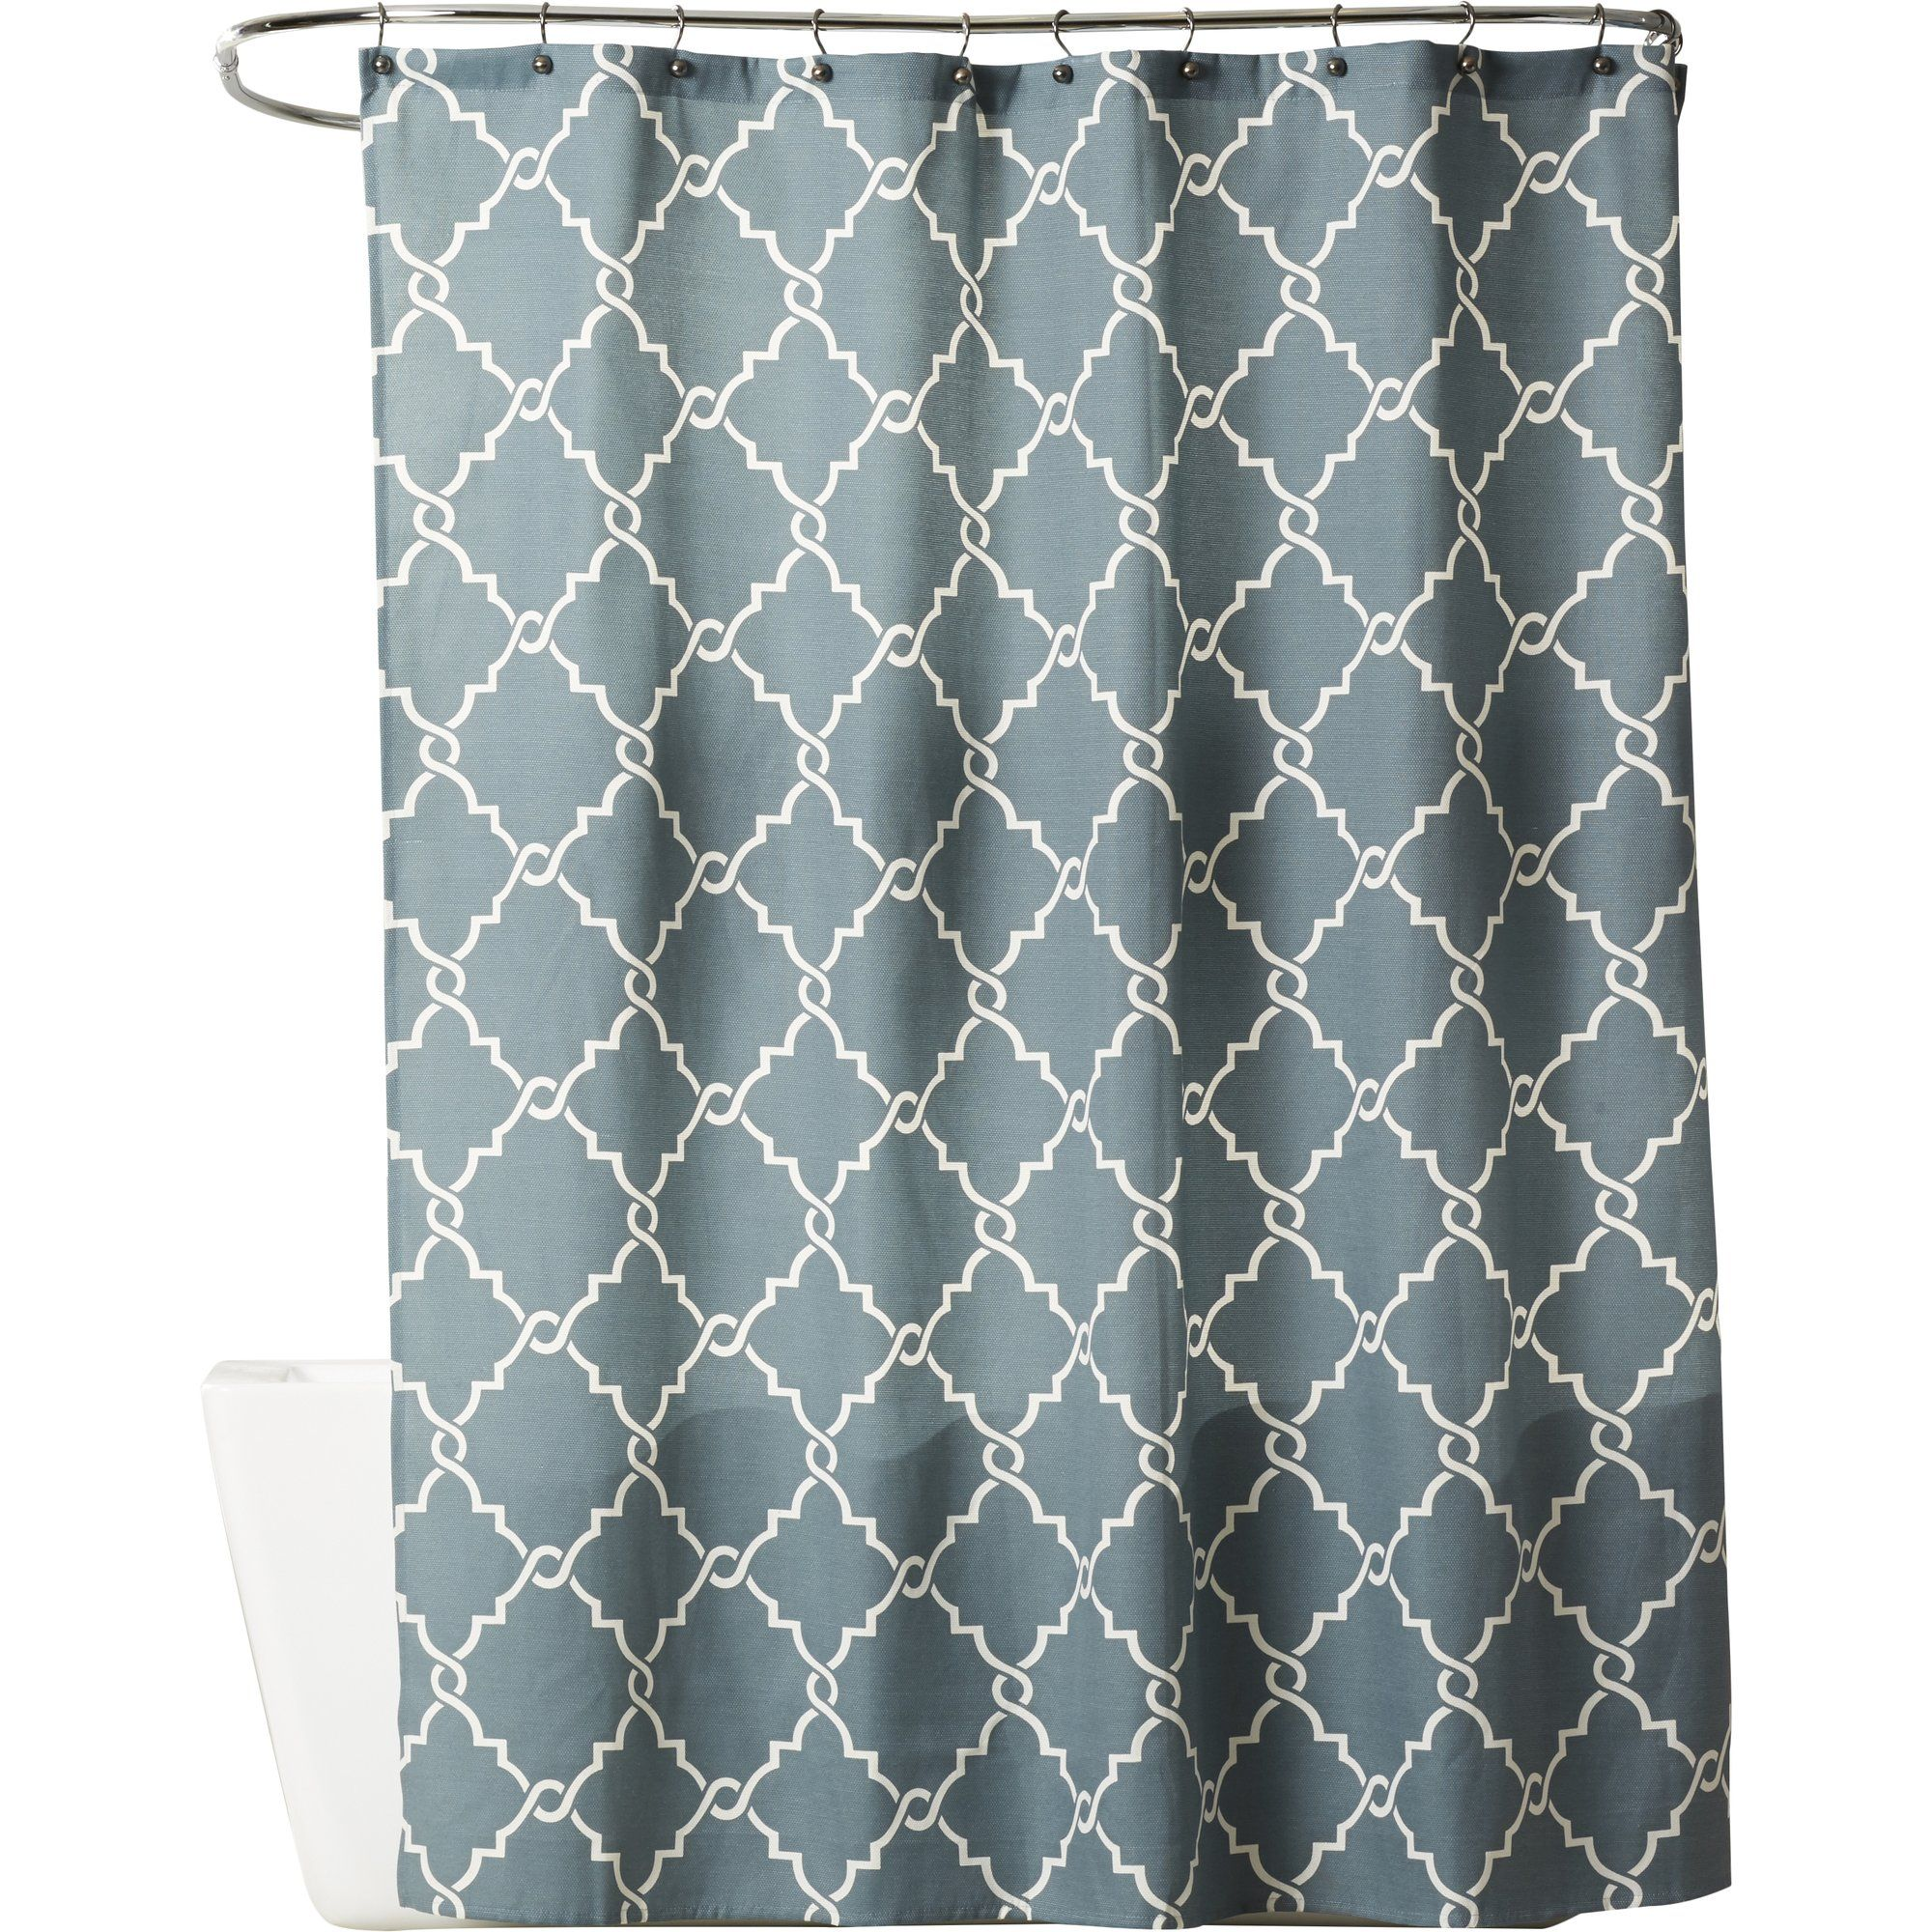 Elegant Design For Creating More Manly Masculine Shower Curtains Target Curtain